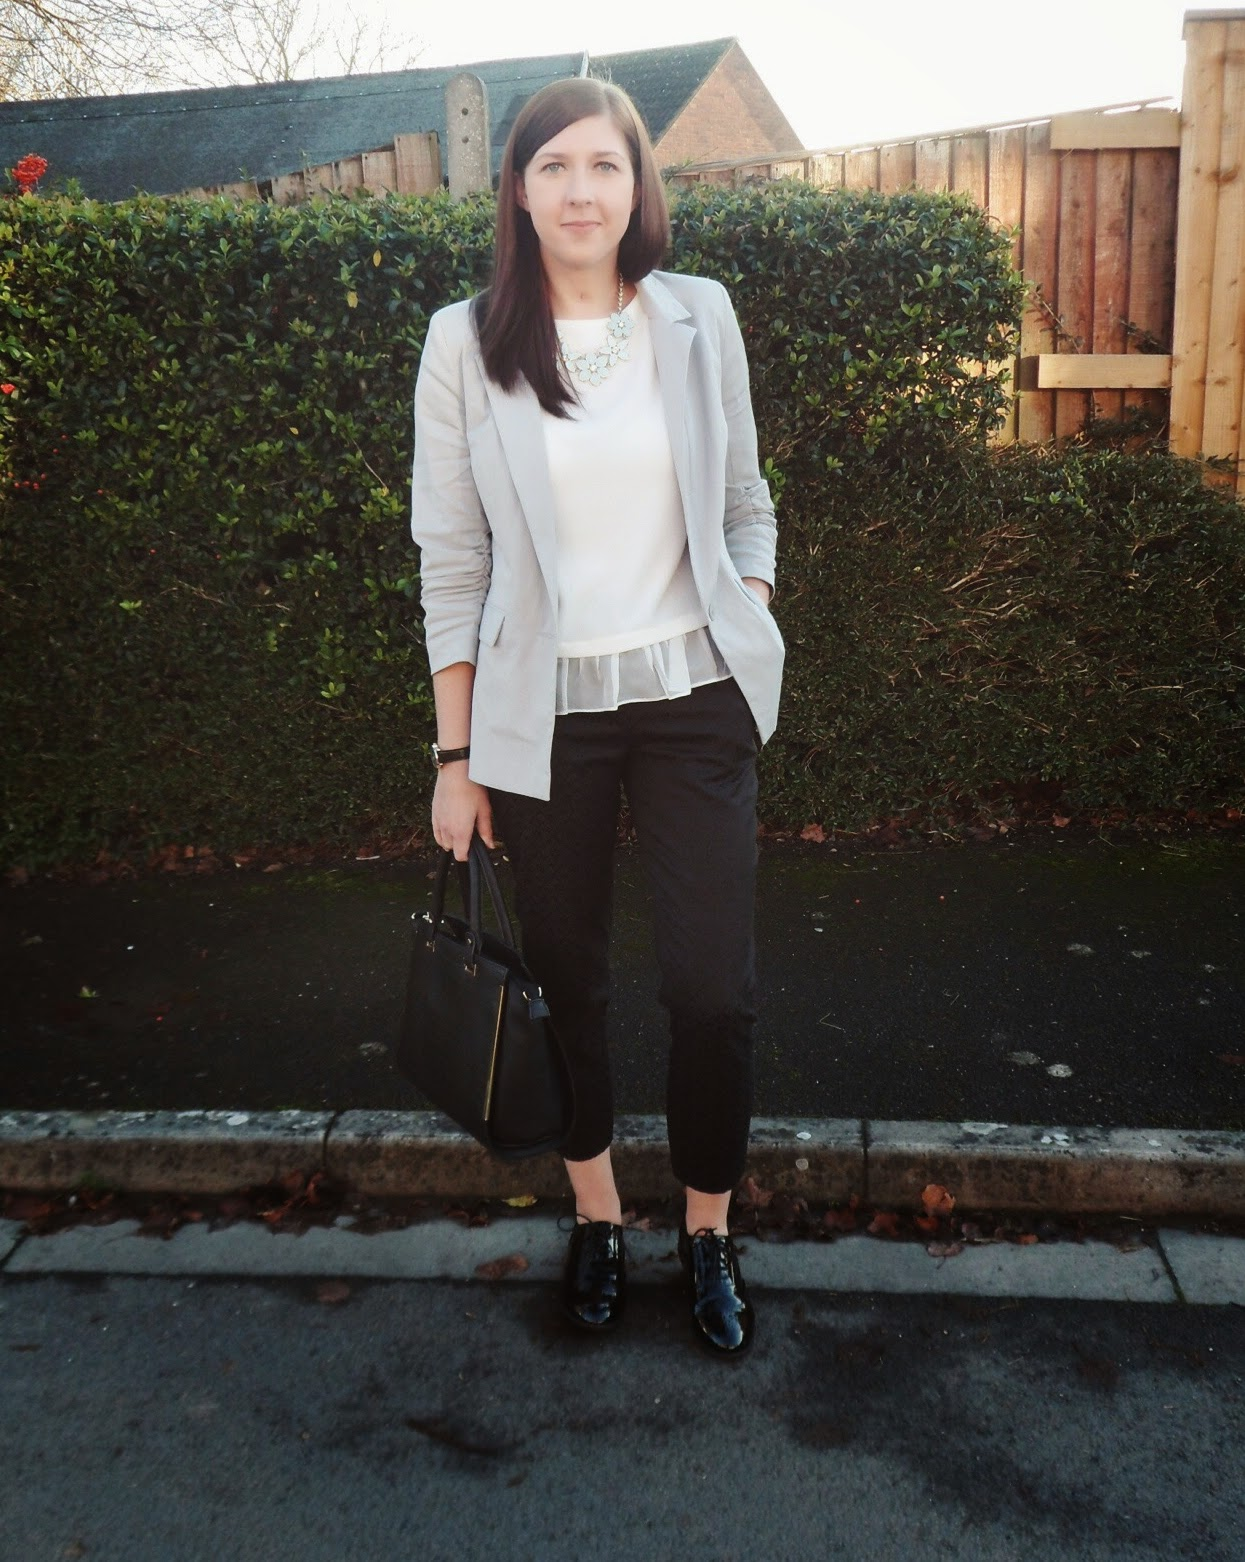 asseenonme, fbloggers, fblogger, fashionbloggers, topshop, primark, ASOS, wiw, whatimwearing, whatibought, lotd, lookoftheday, ootd, outfitoftheday, workwear, monochrome, fashion